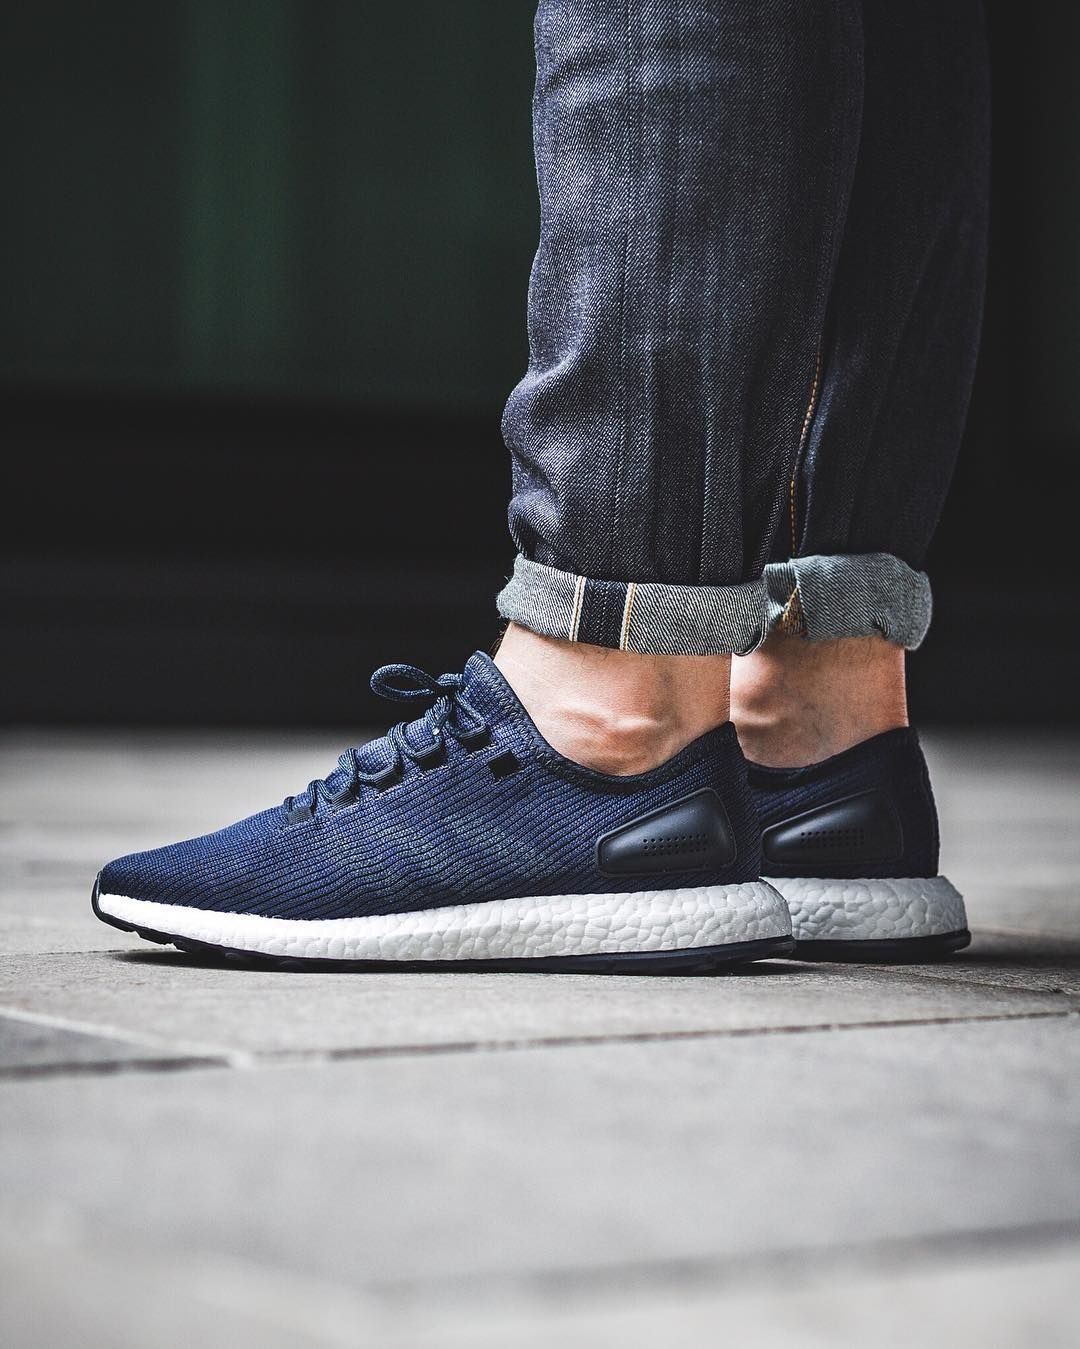 PureBoost X Shoes adidas US